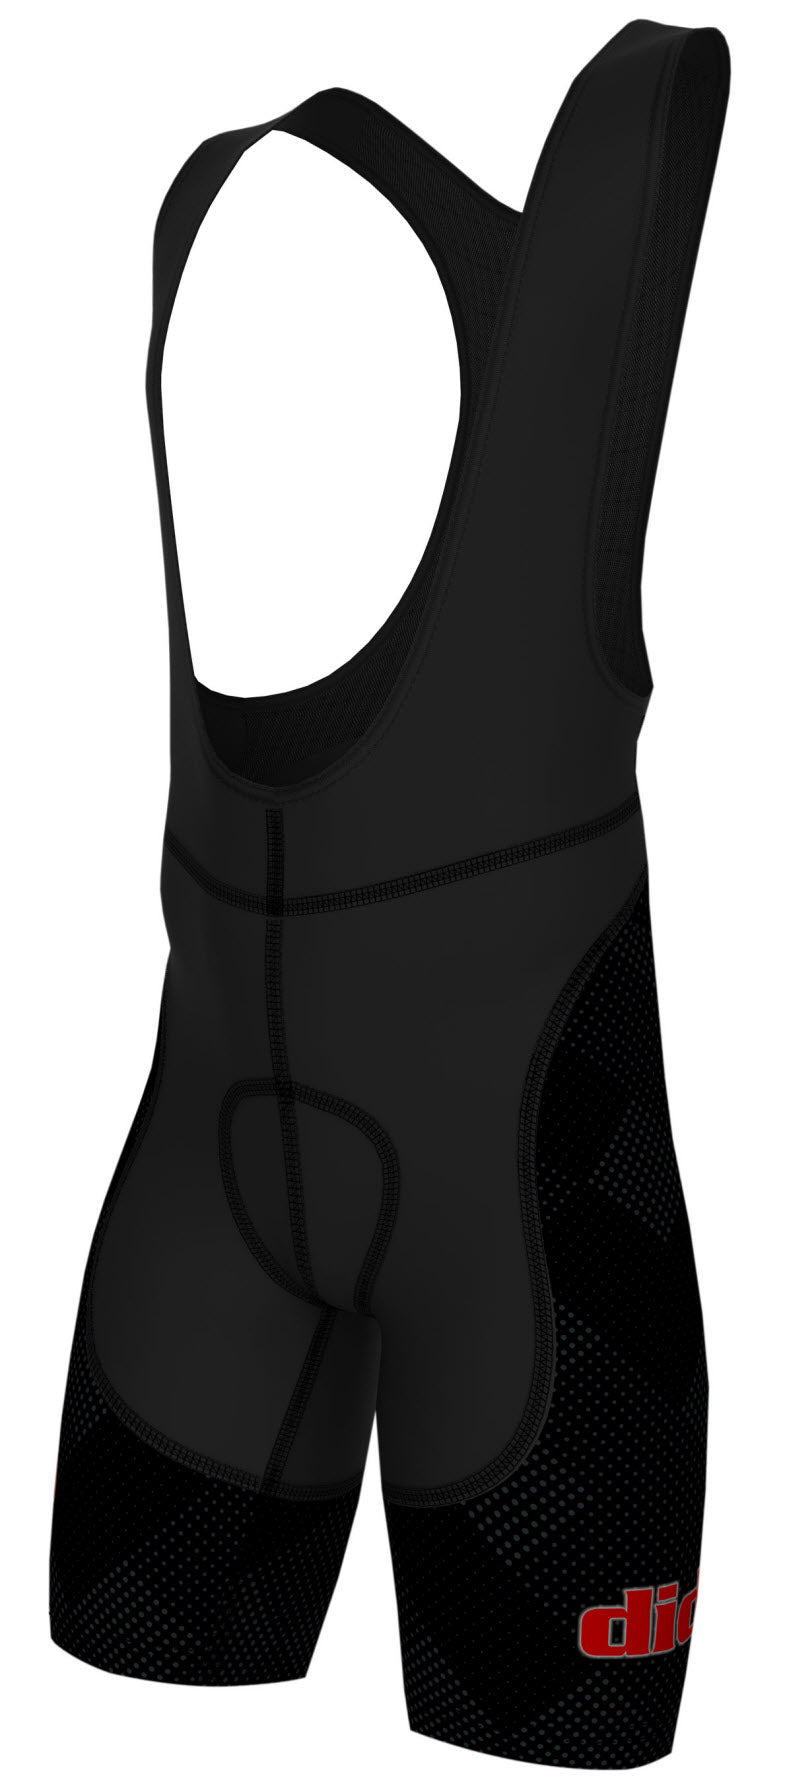 DiDOO Men's Classic Quick Dry Padded Cycling Bib Shorts Black and Grey